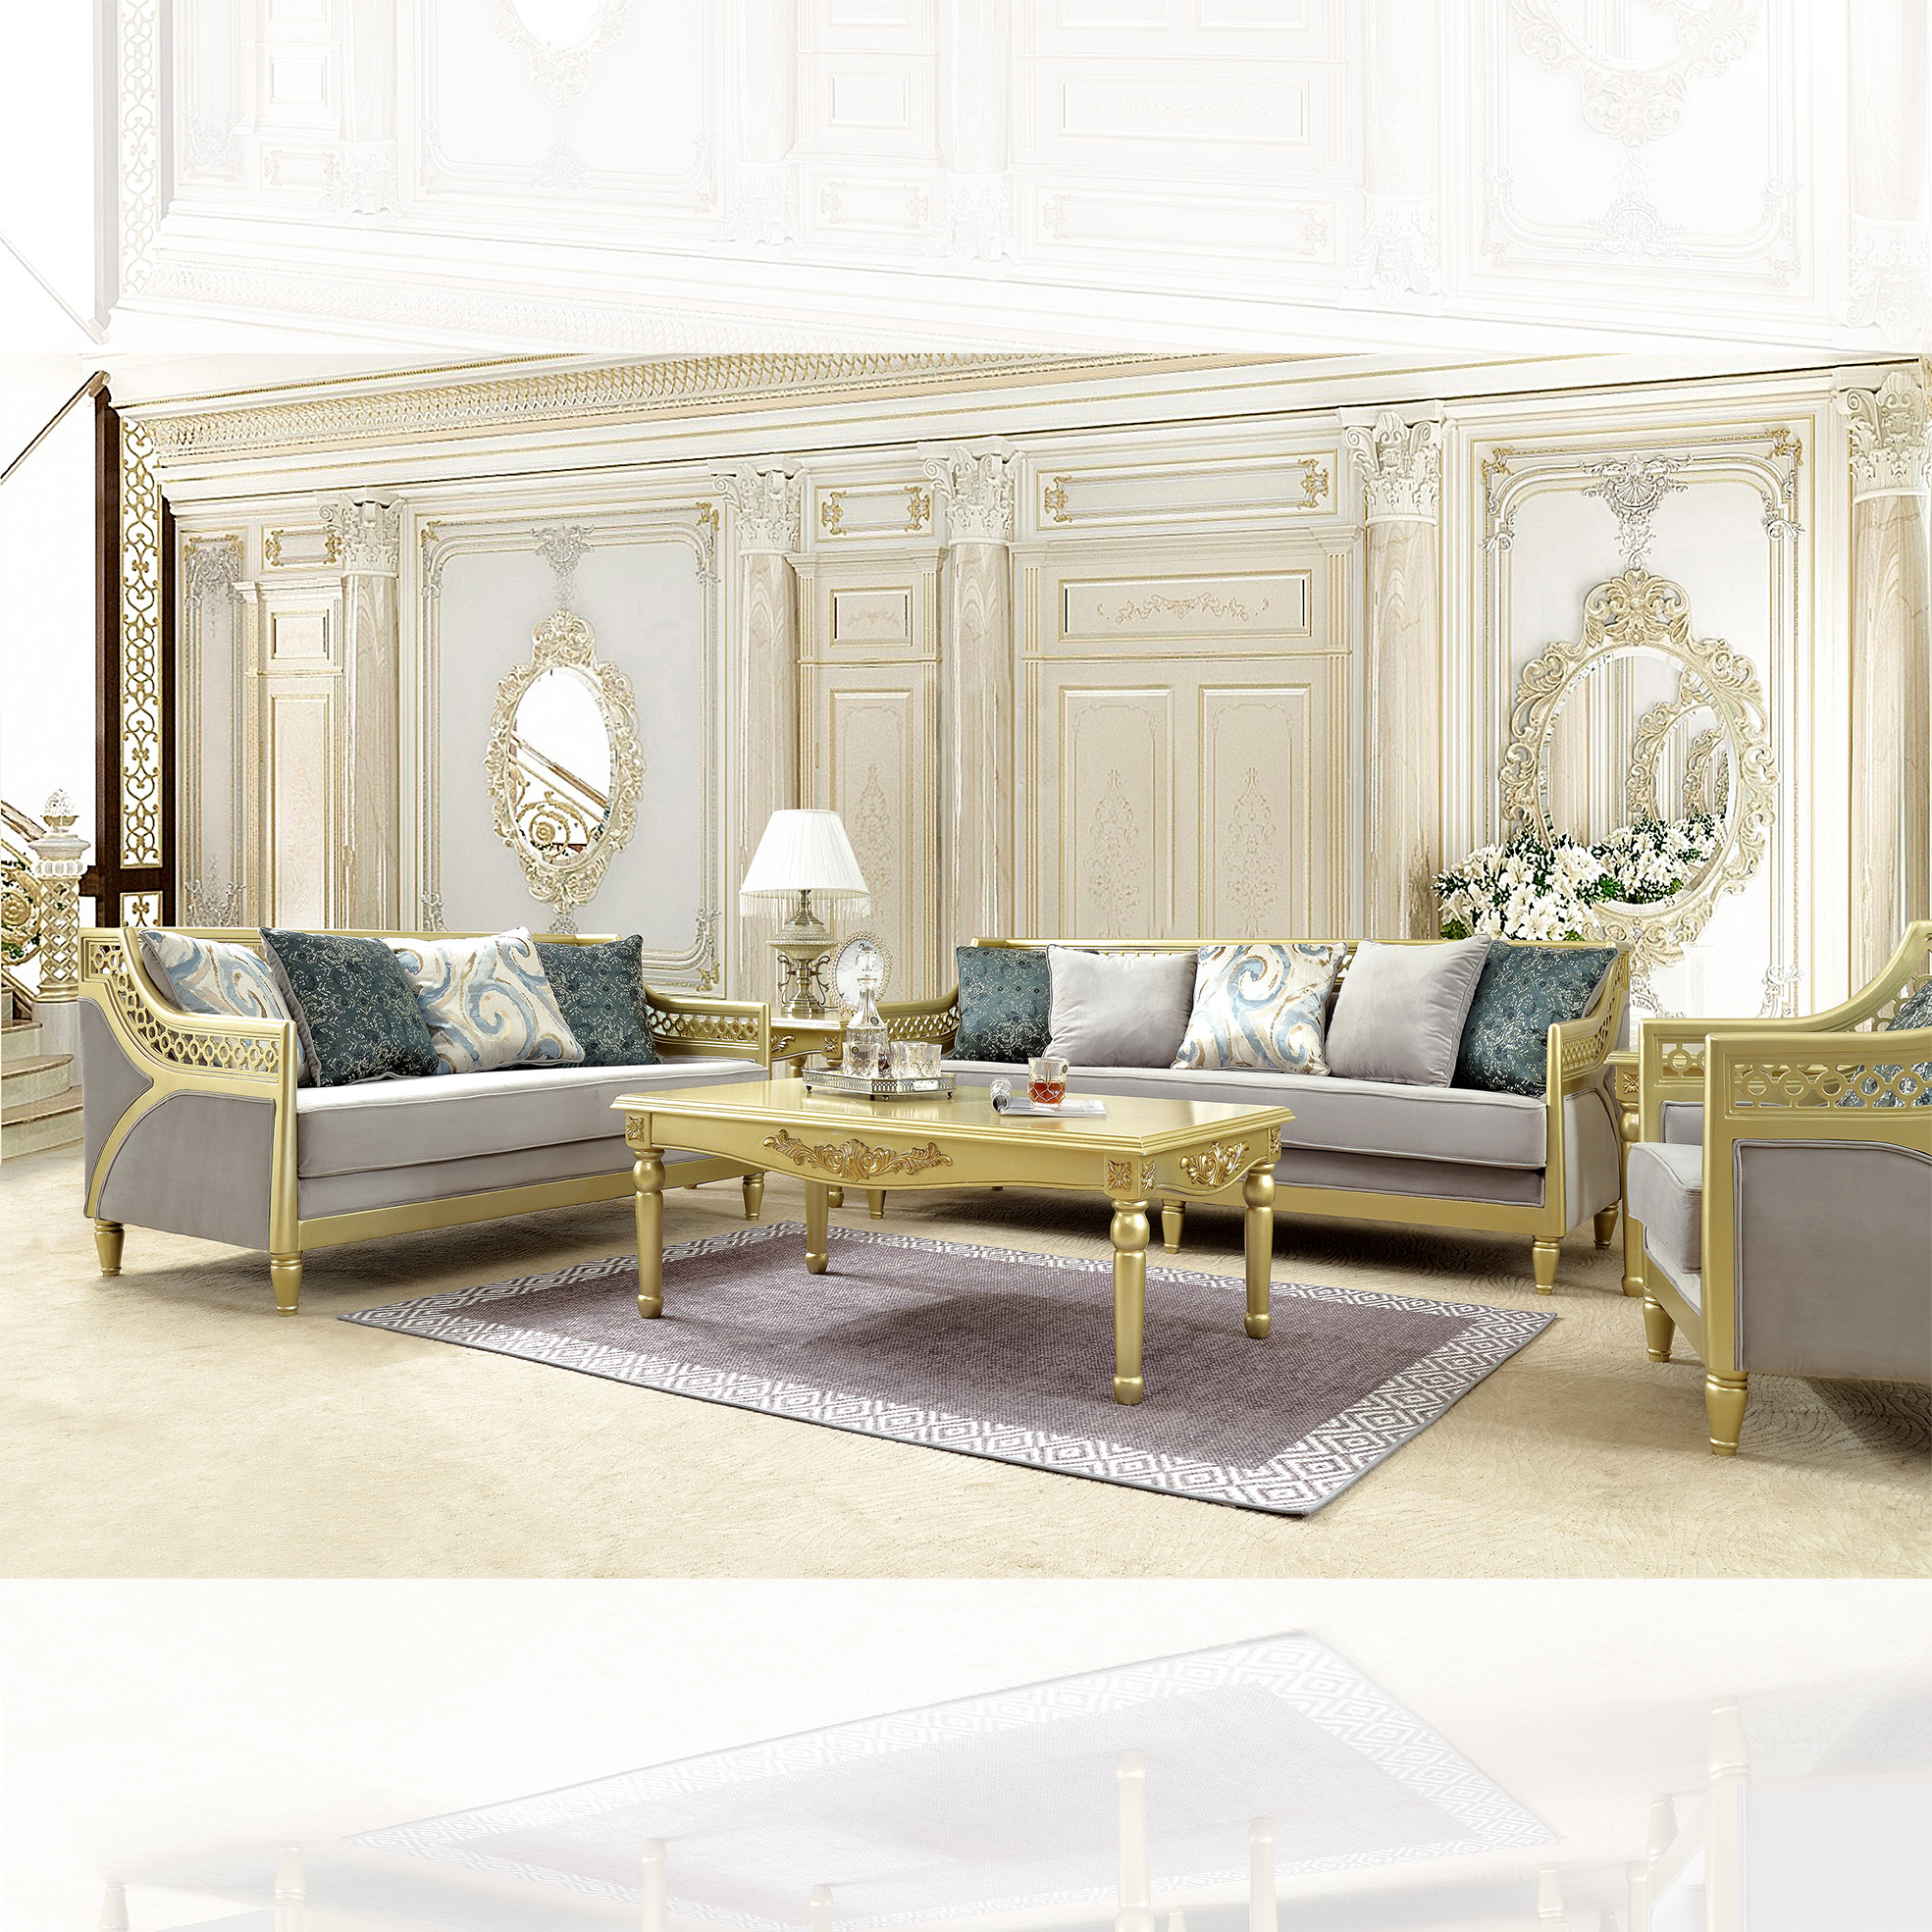 Traditional Living Room Set 3 PCS in Yellow Fabric Traditional Style Homey Design HD-2063